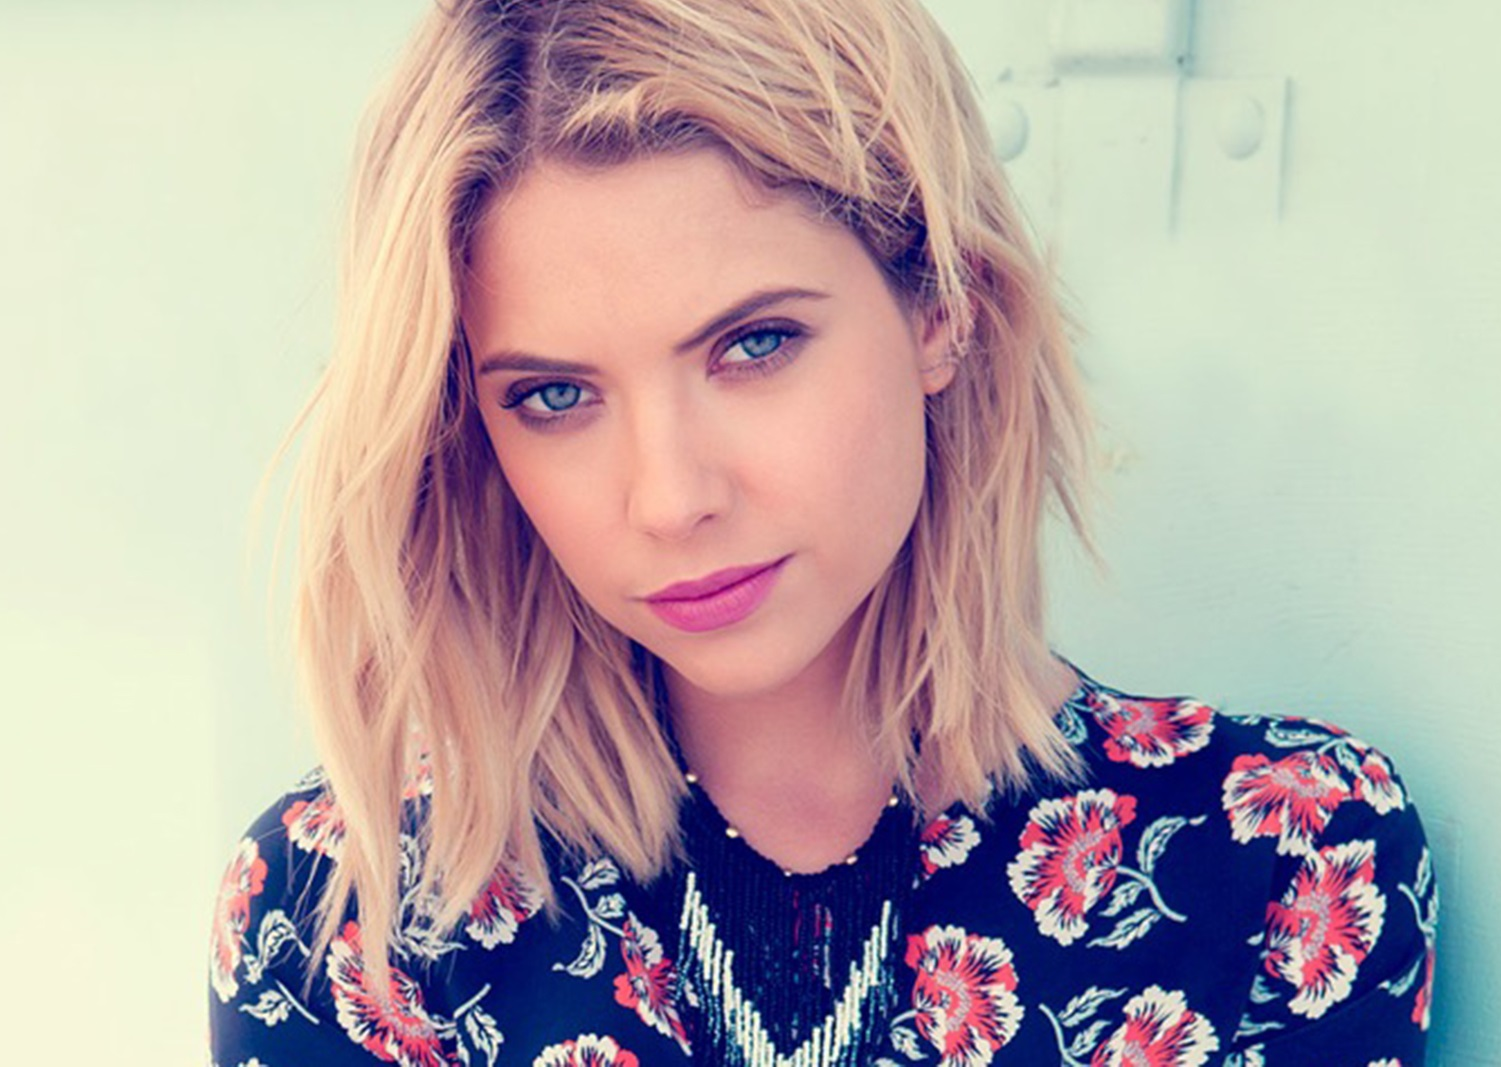 Ashley Benson Family Photos, Age, Parents, Boyfriend